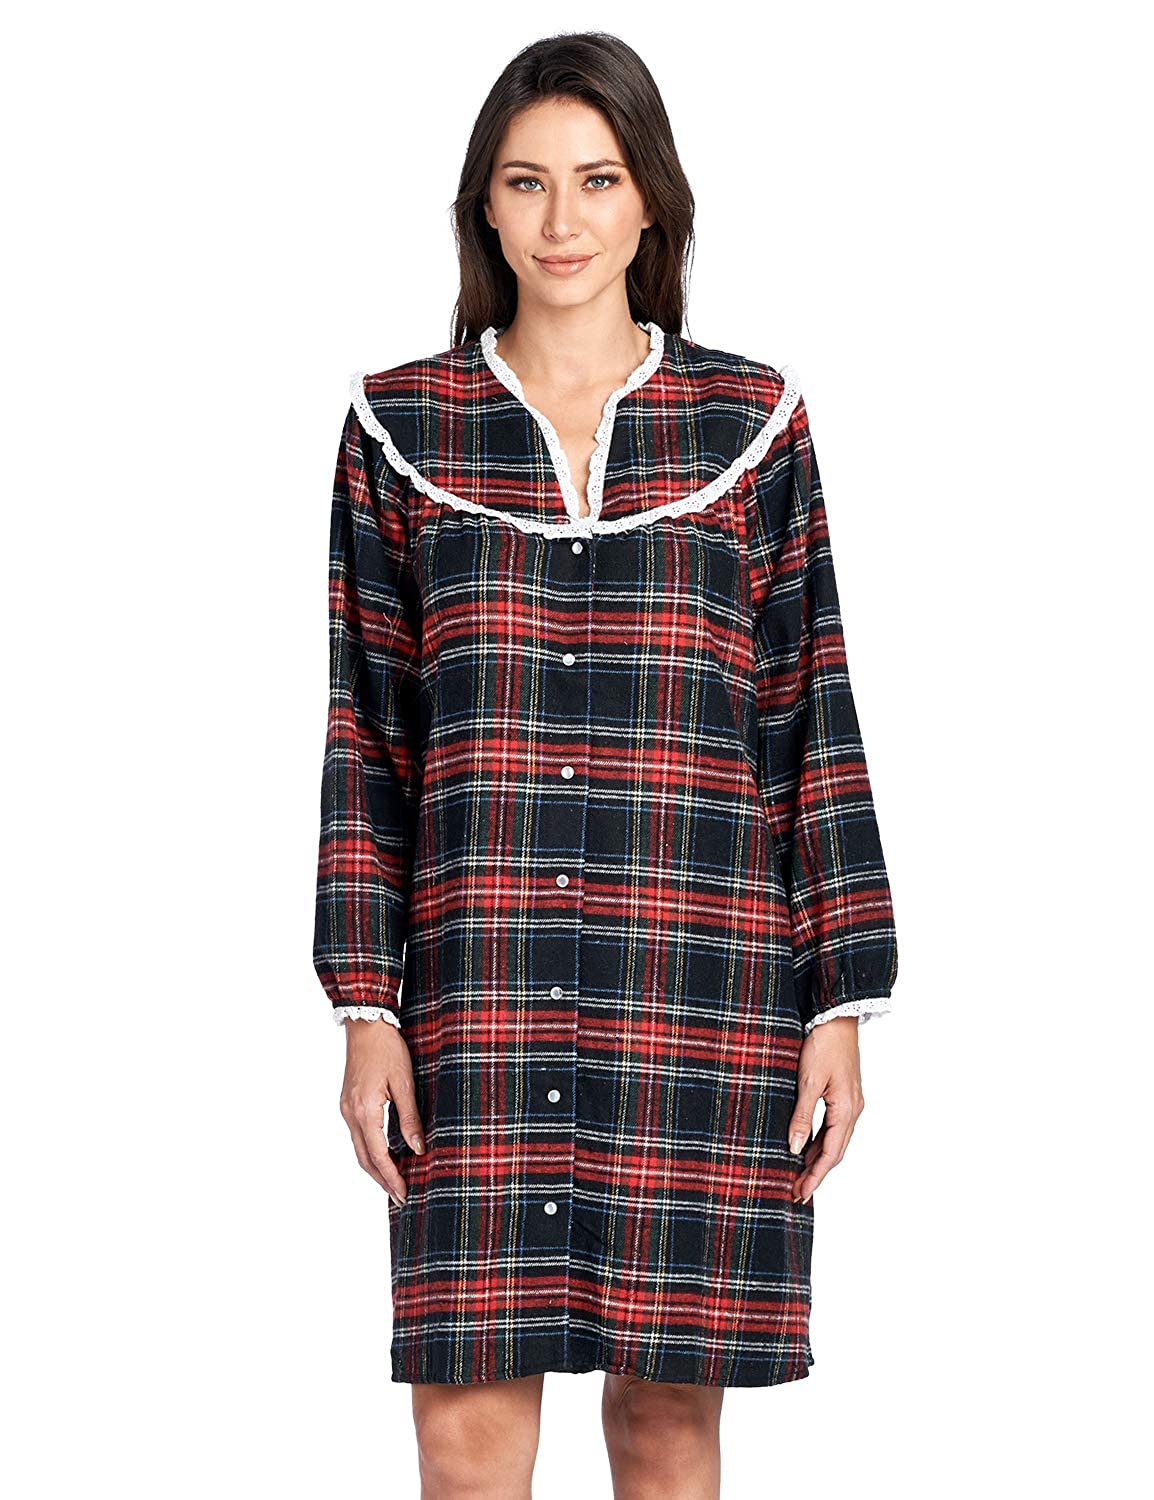 a0a4caece1 Ashford brooks womens snap front flannel robe long sleeve lounger duster  house dress at amazon womens